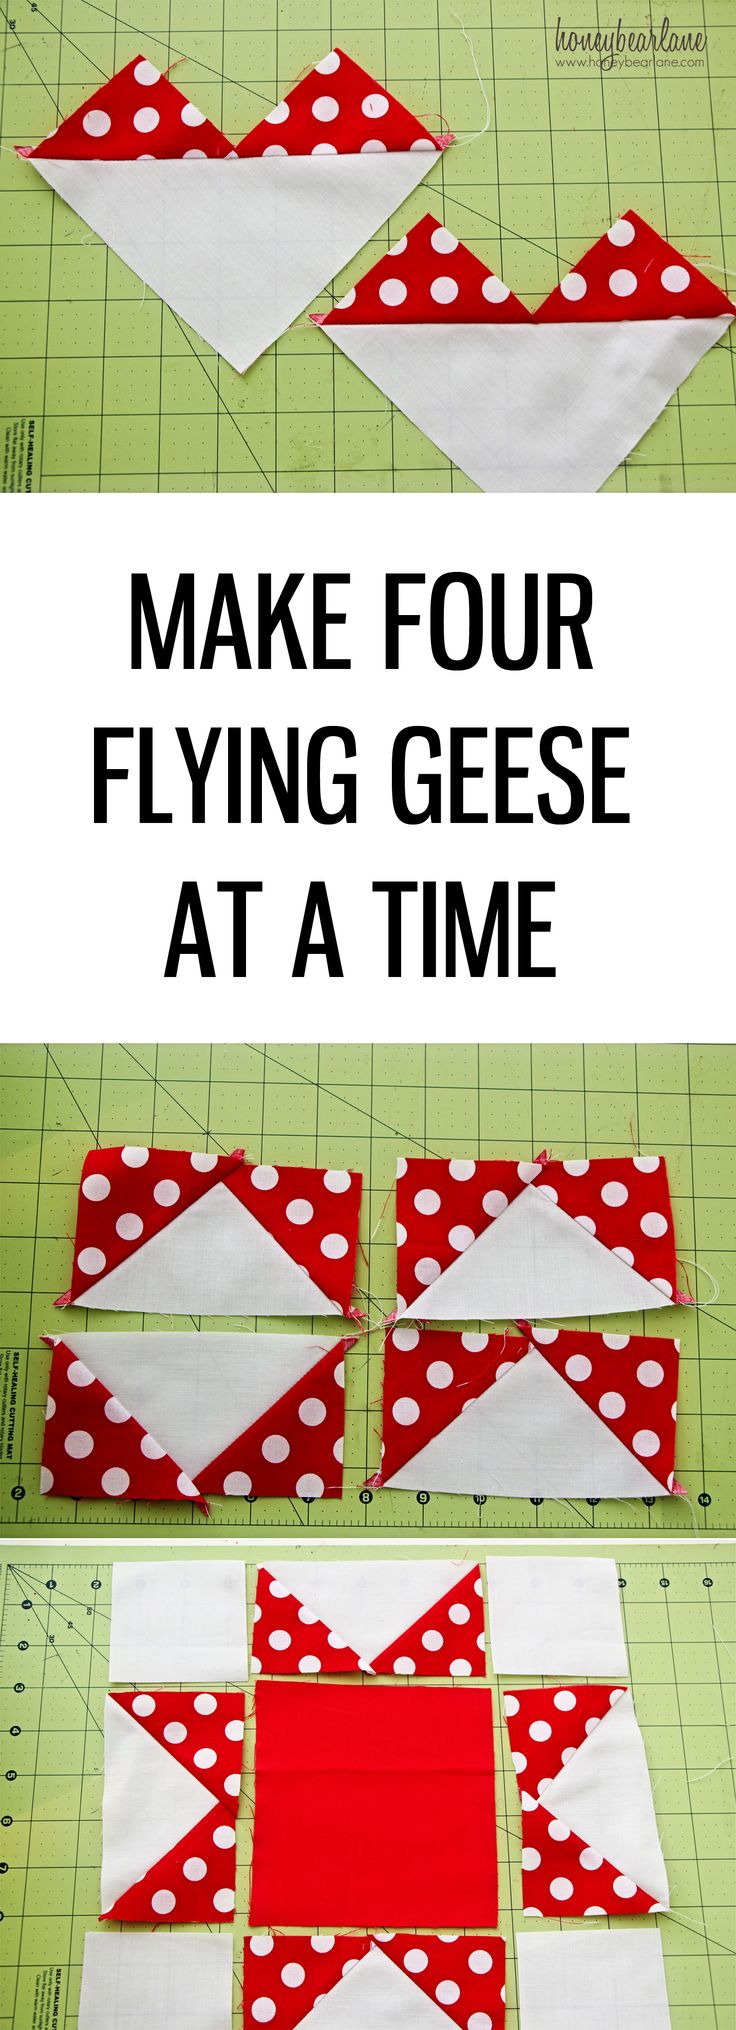 Make Four Flying Geese at a Time                                                                                                                                                                                 More